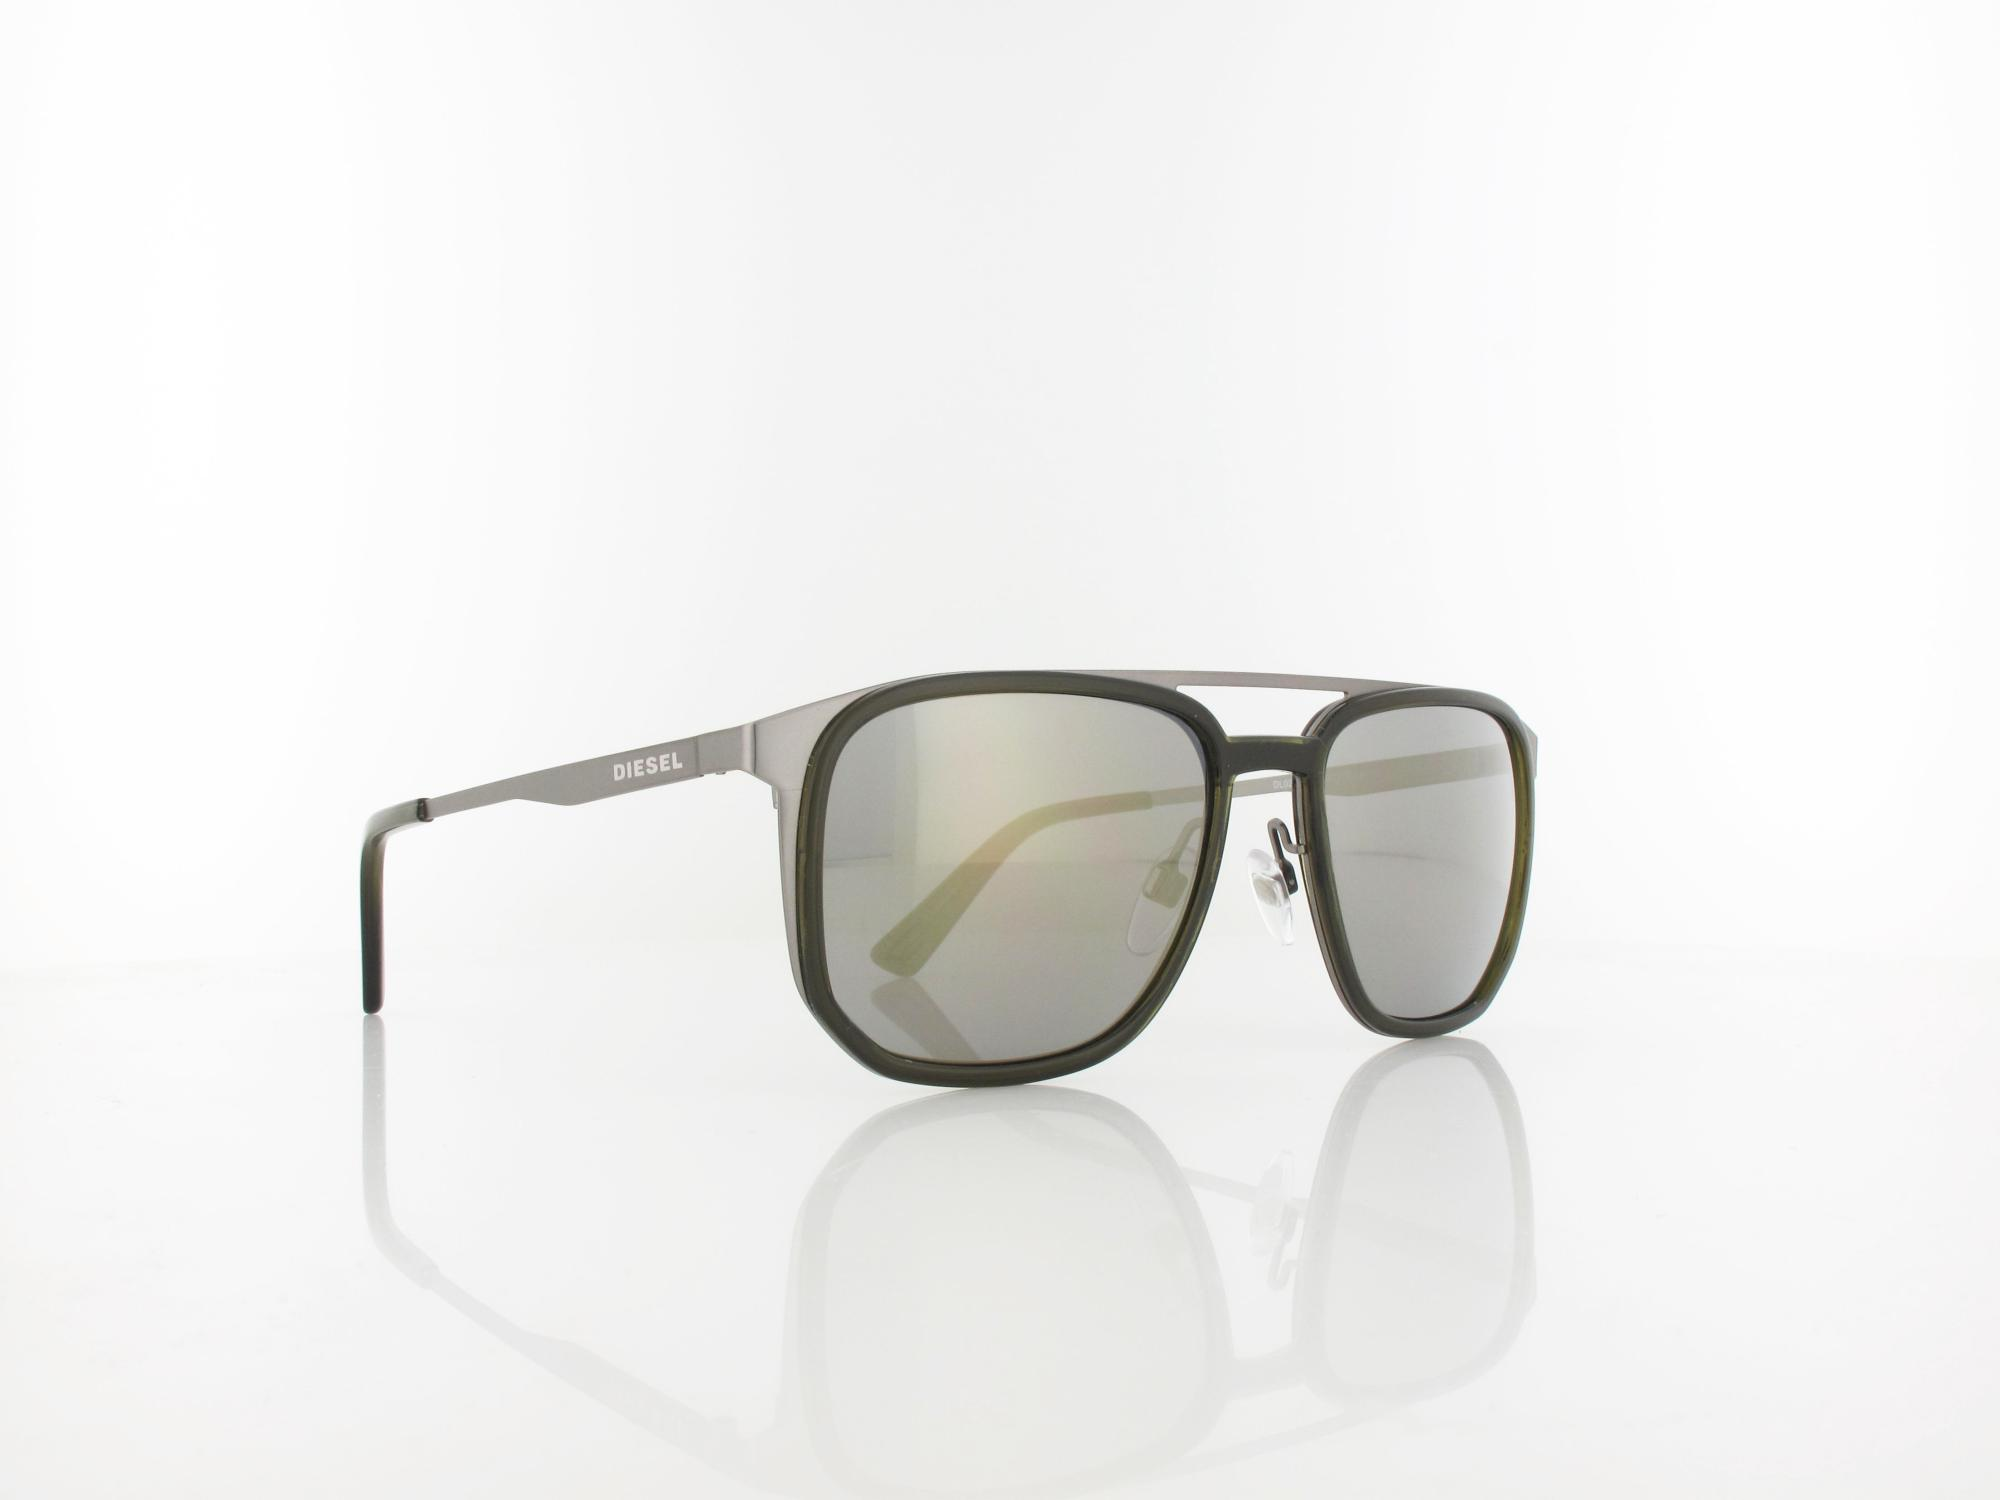 Diesel | DL0294/S 09C 55 | matte anthracite / grey mirror